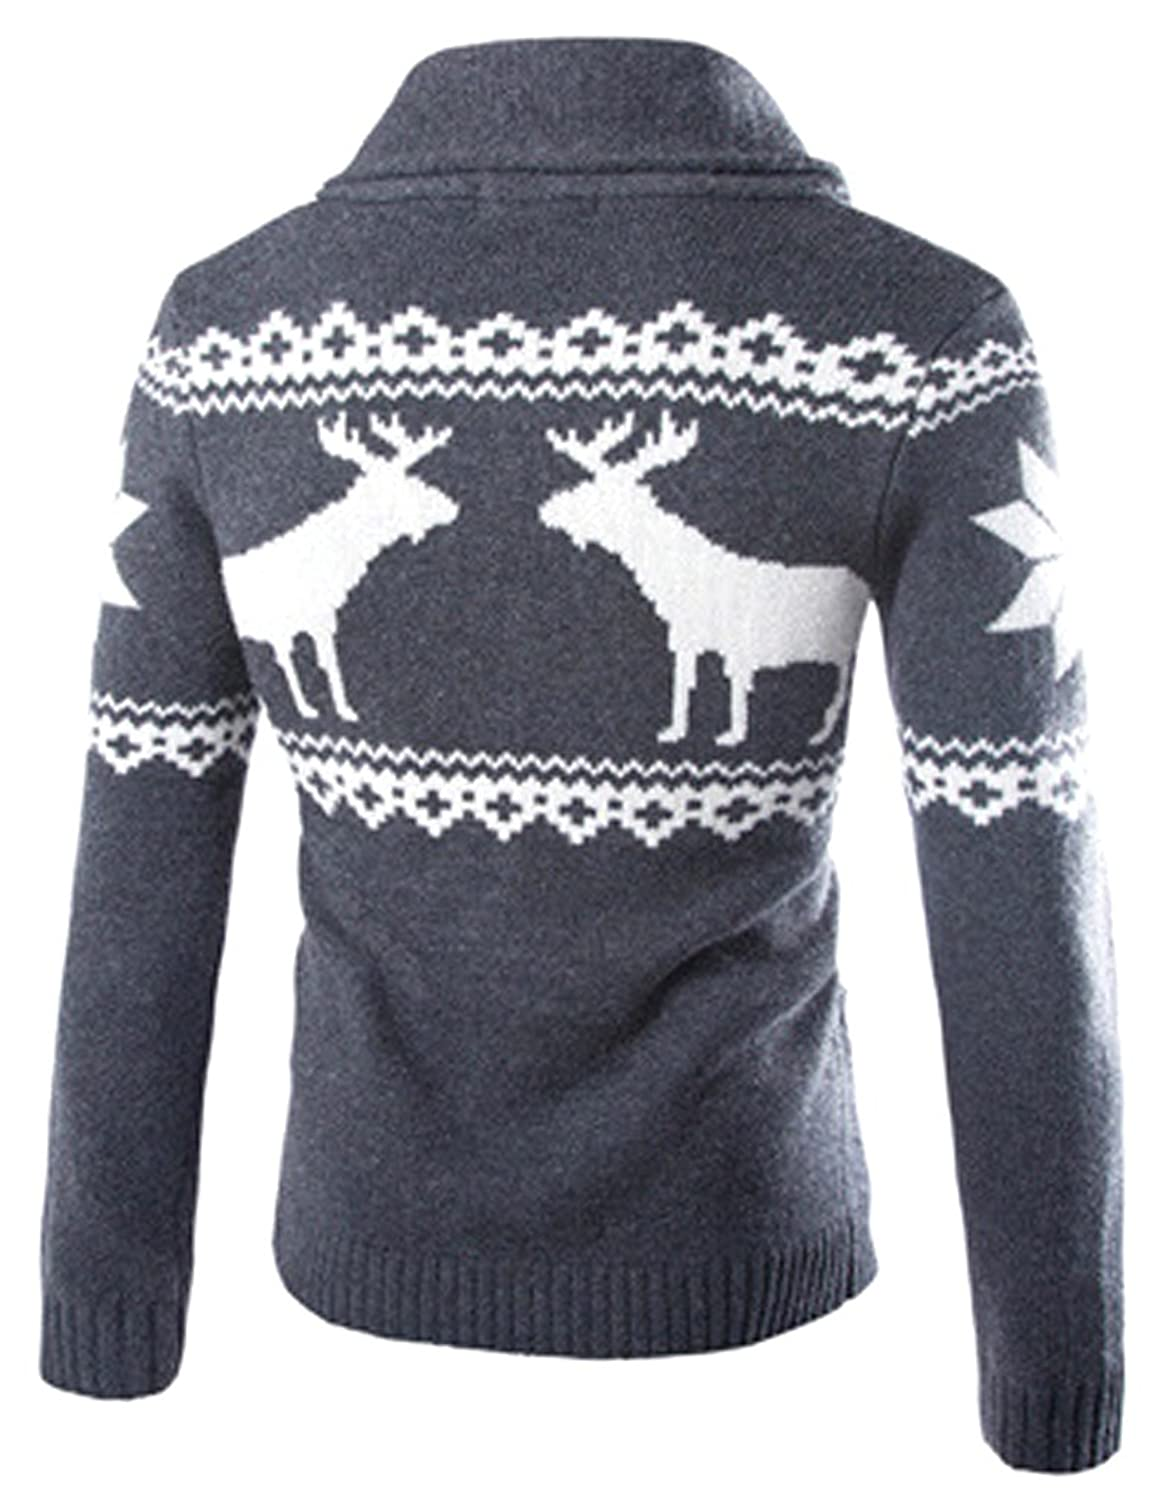 APTRO Men's Christmas Holiday Casual Cardigan Reindeer Sweater